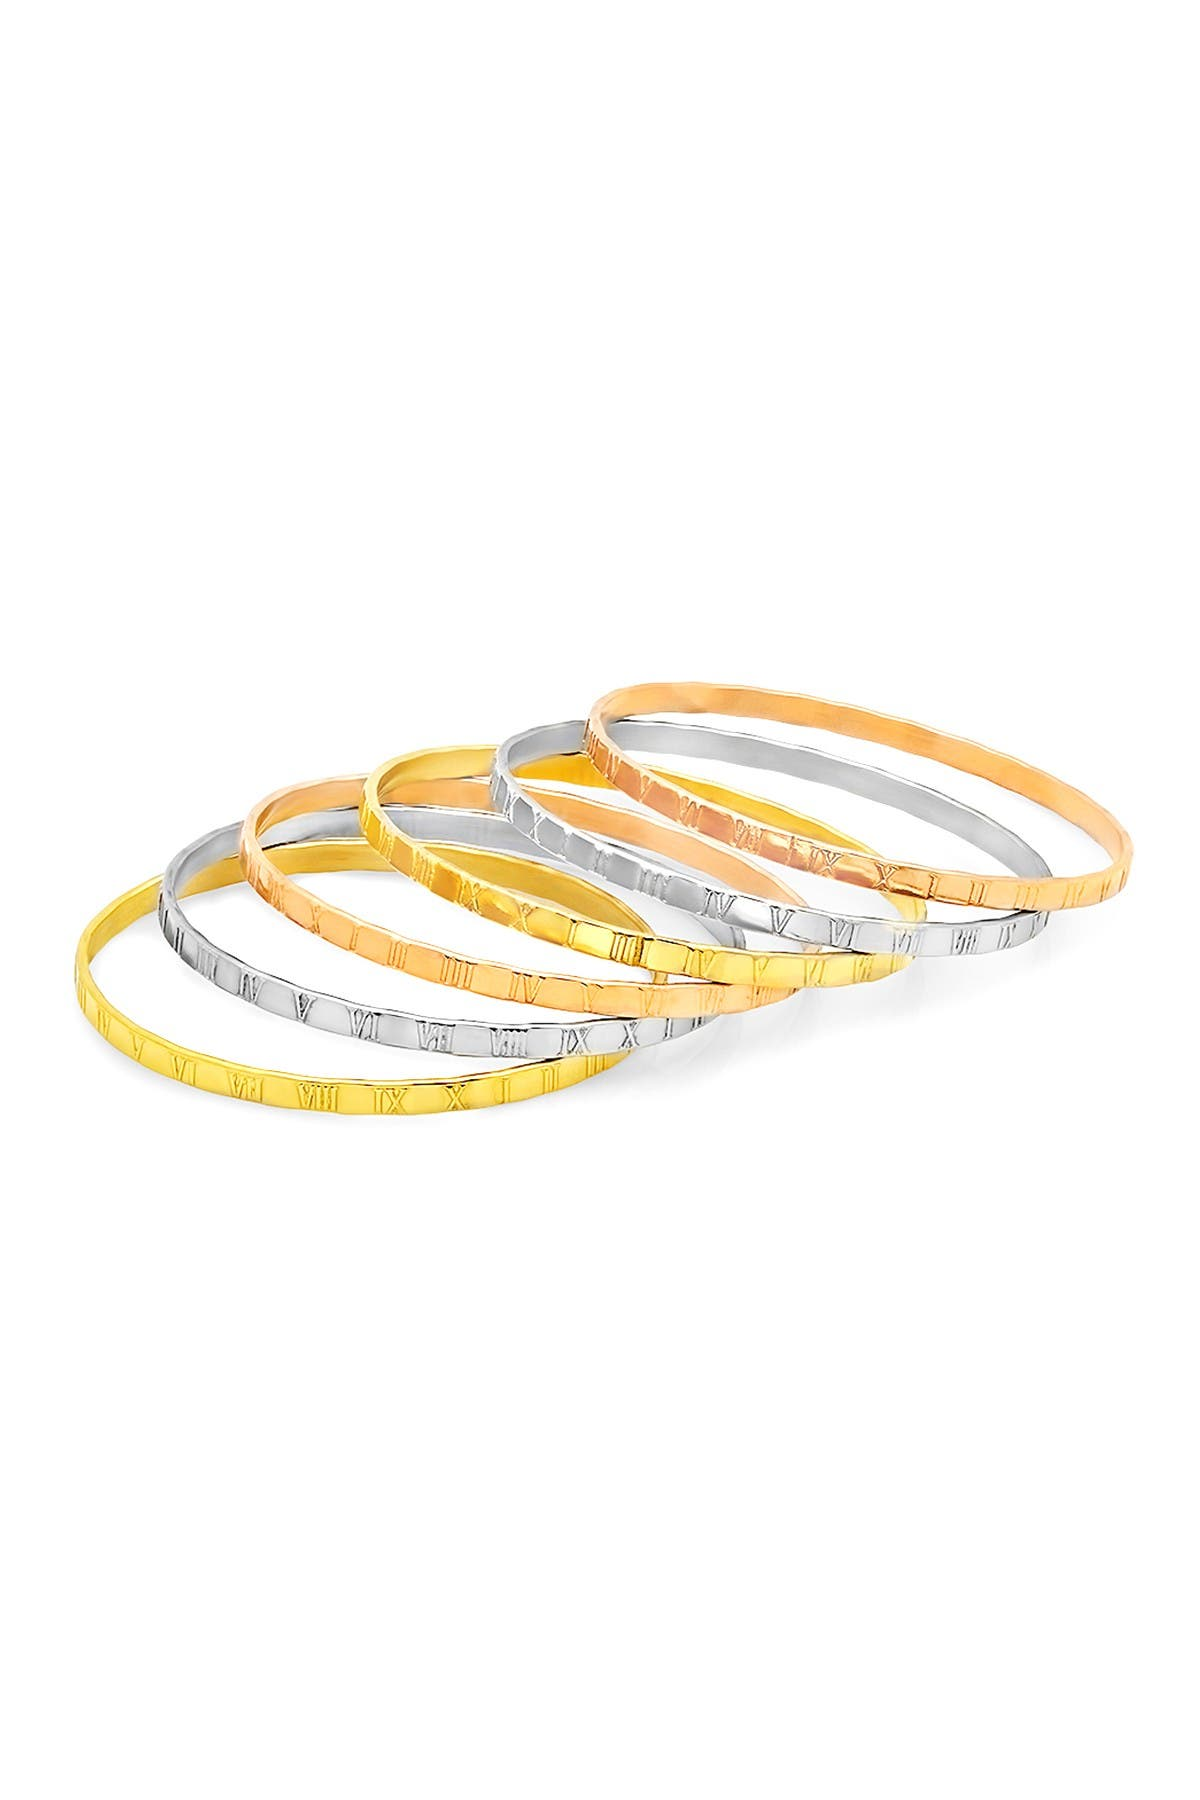 Image of HMY Jewelry Tricolor Roman Numeral Bangle Bracelet Set